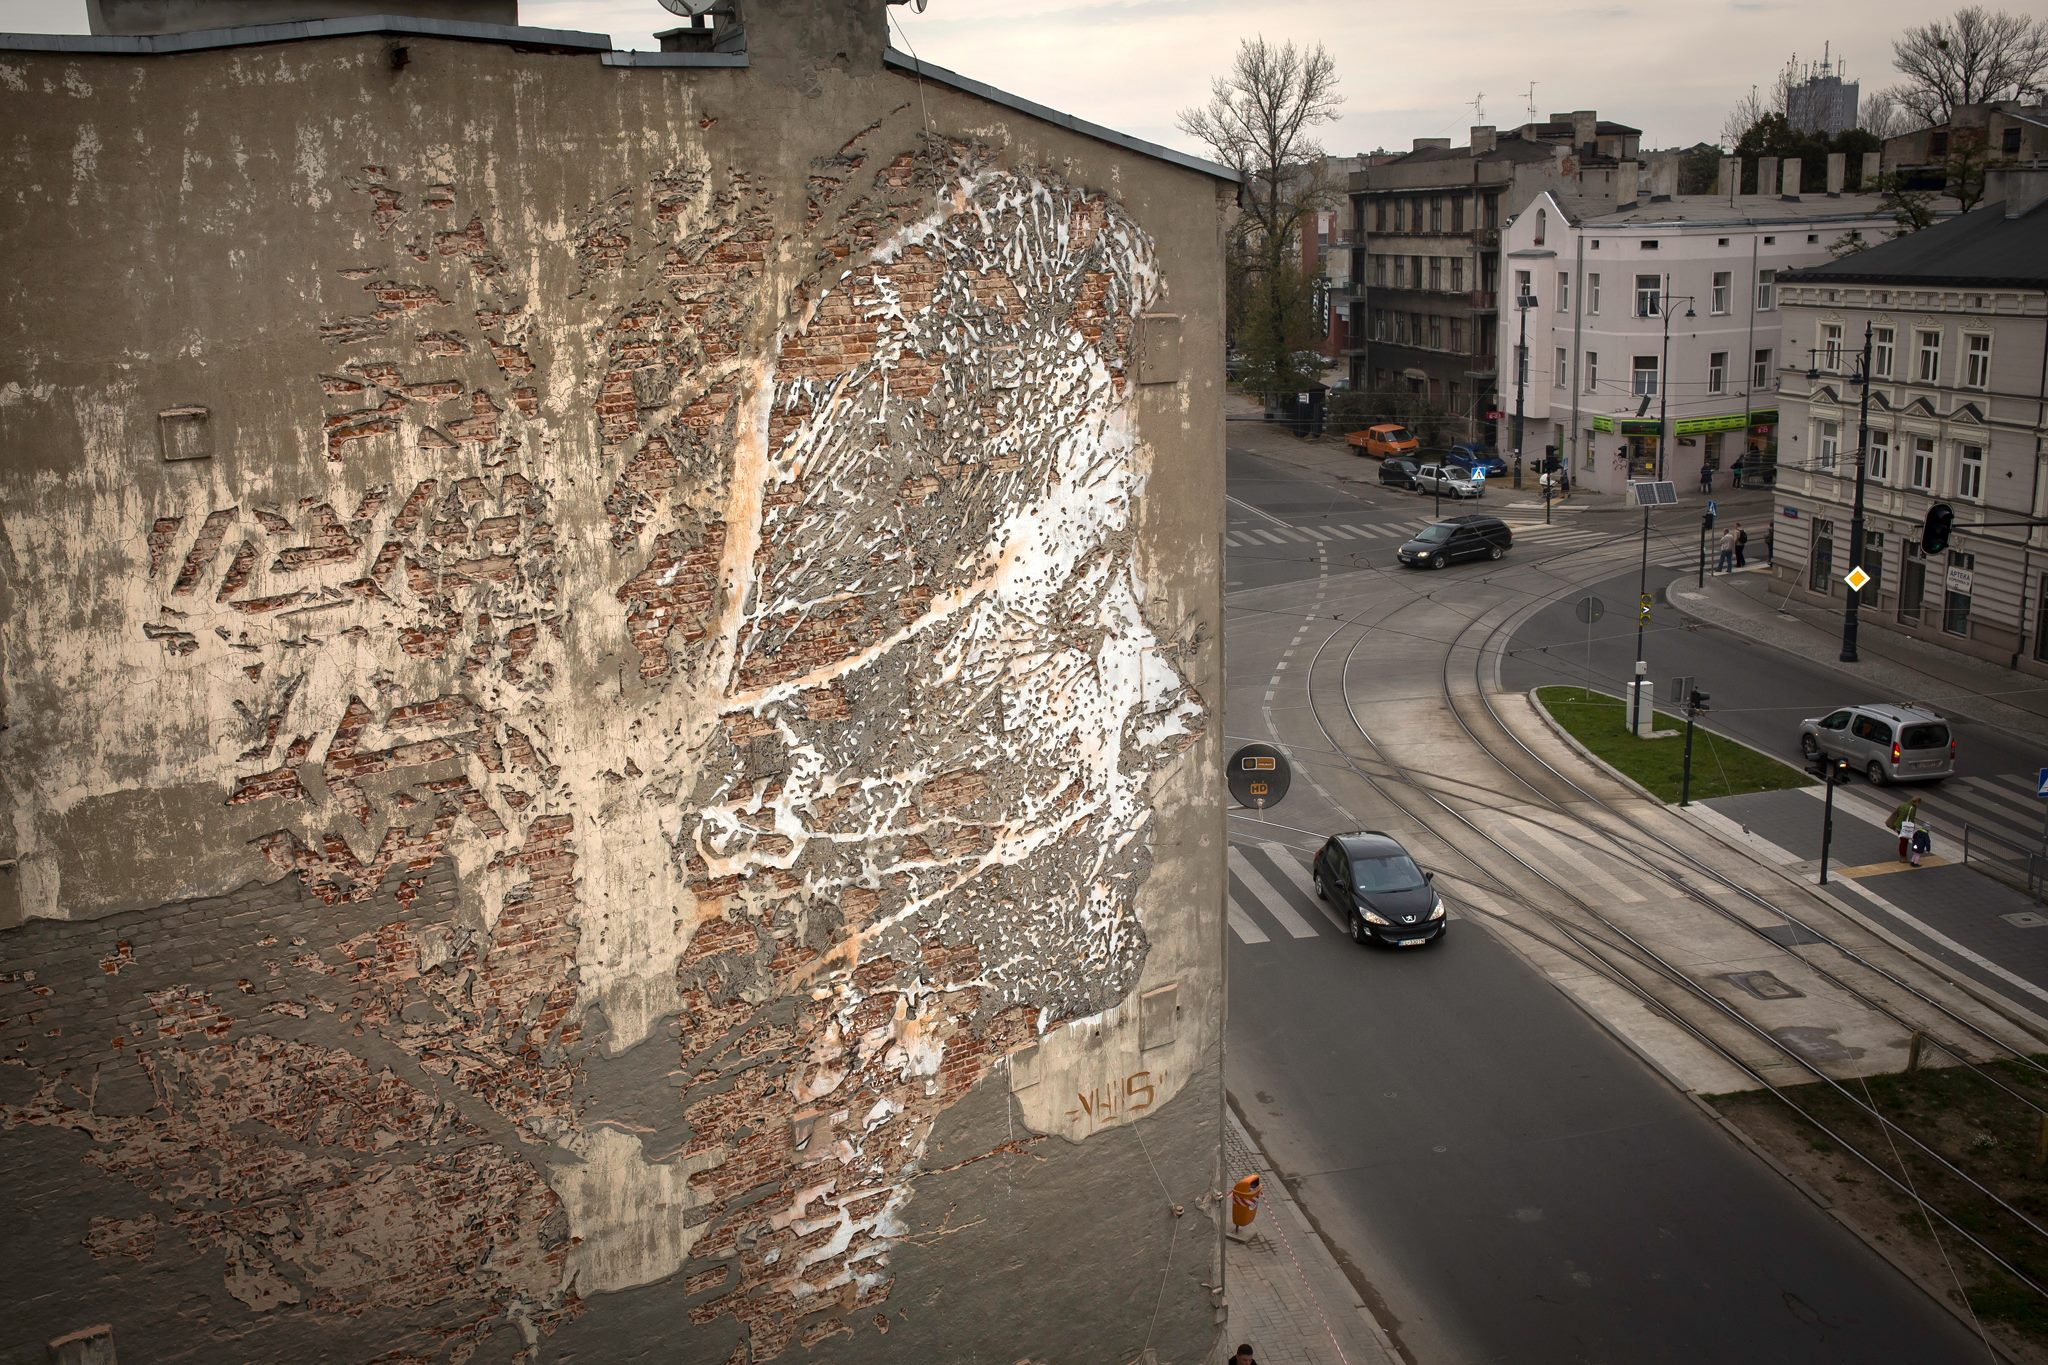 vhils-new-mural-for-galeria-urban-forms-09